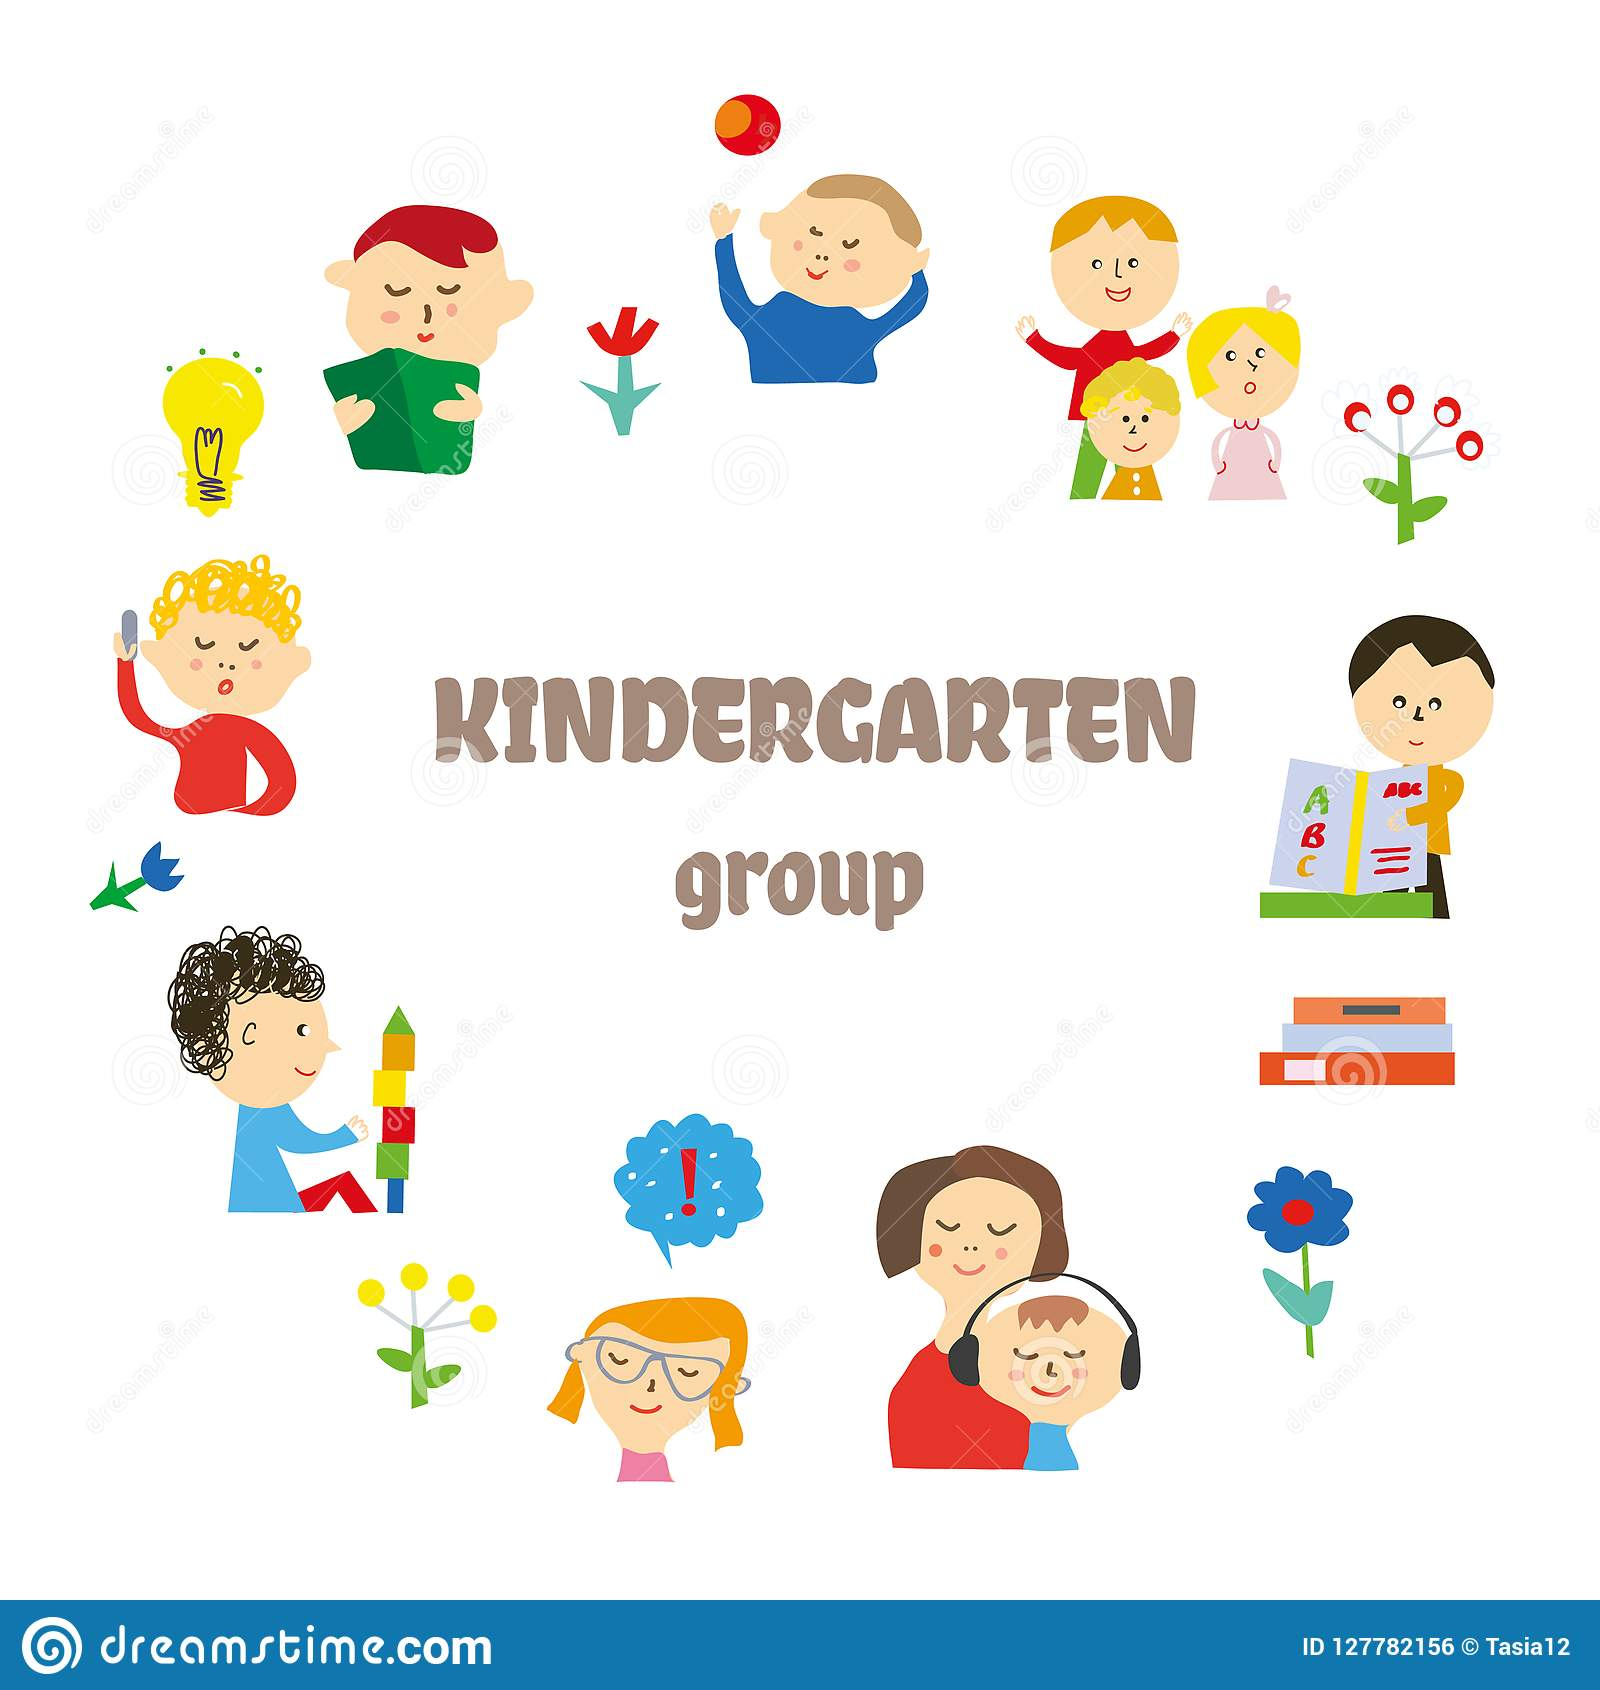 Kindergarten Background For Card Or Invitation With Kids Playing